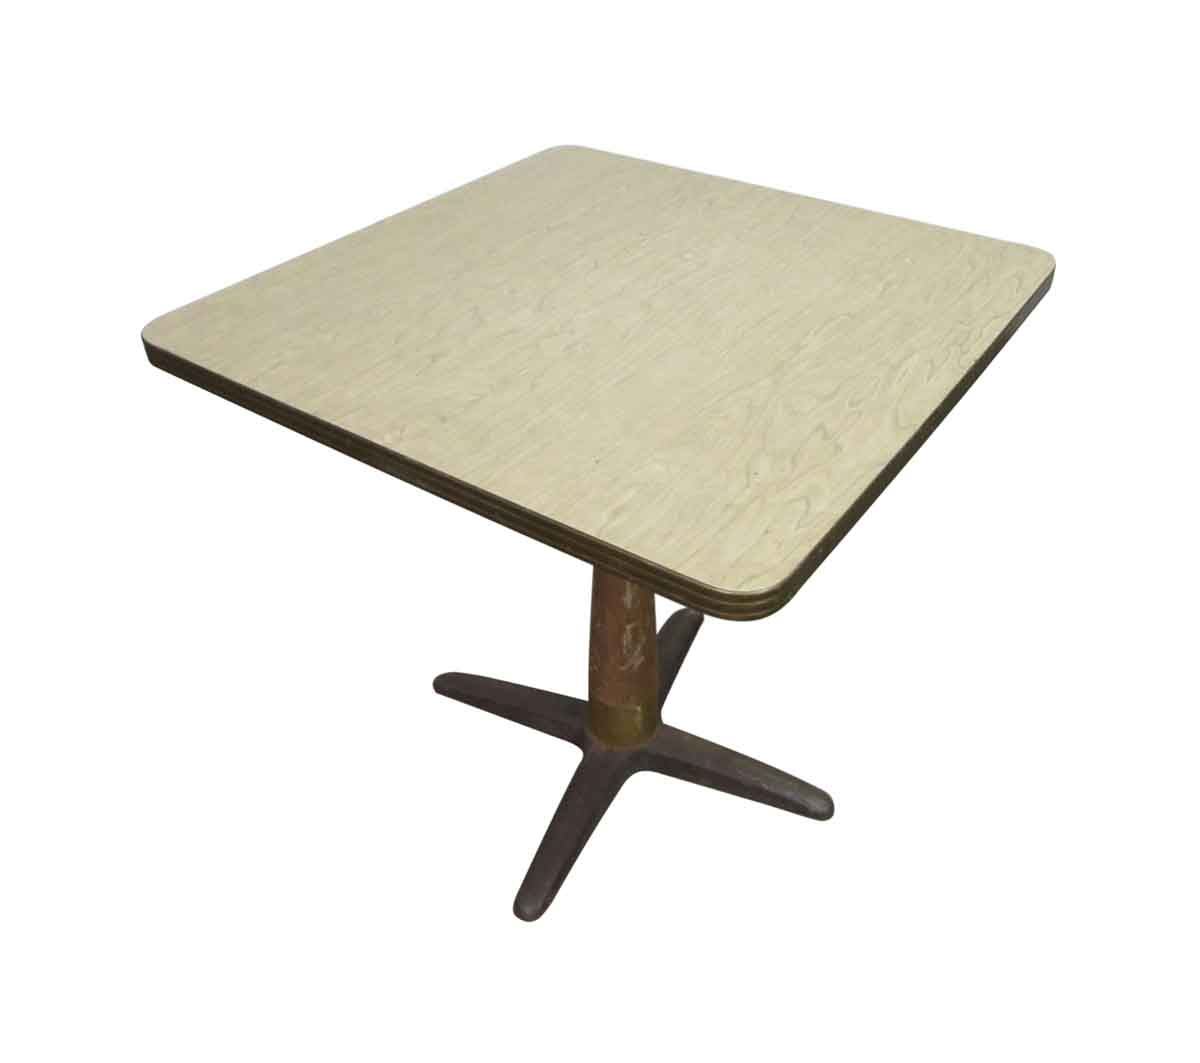 1940s Cafe Table With Original Formica Top